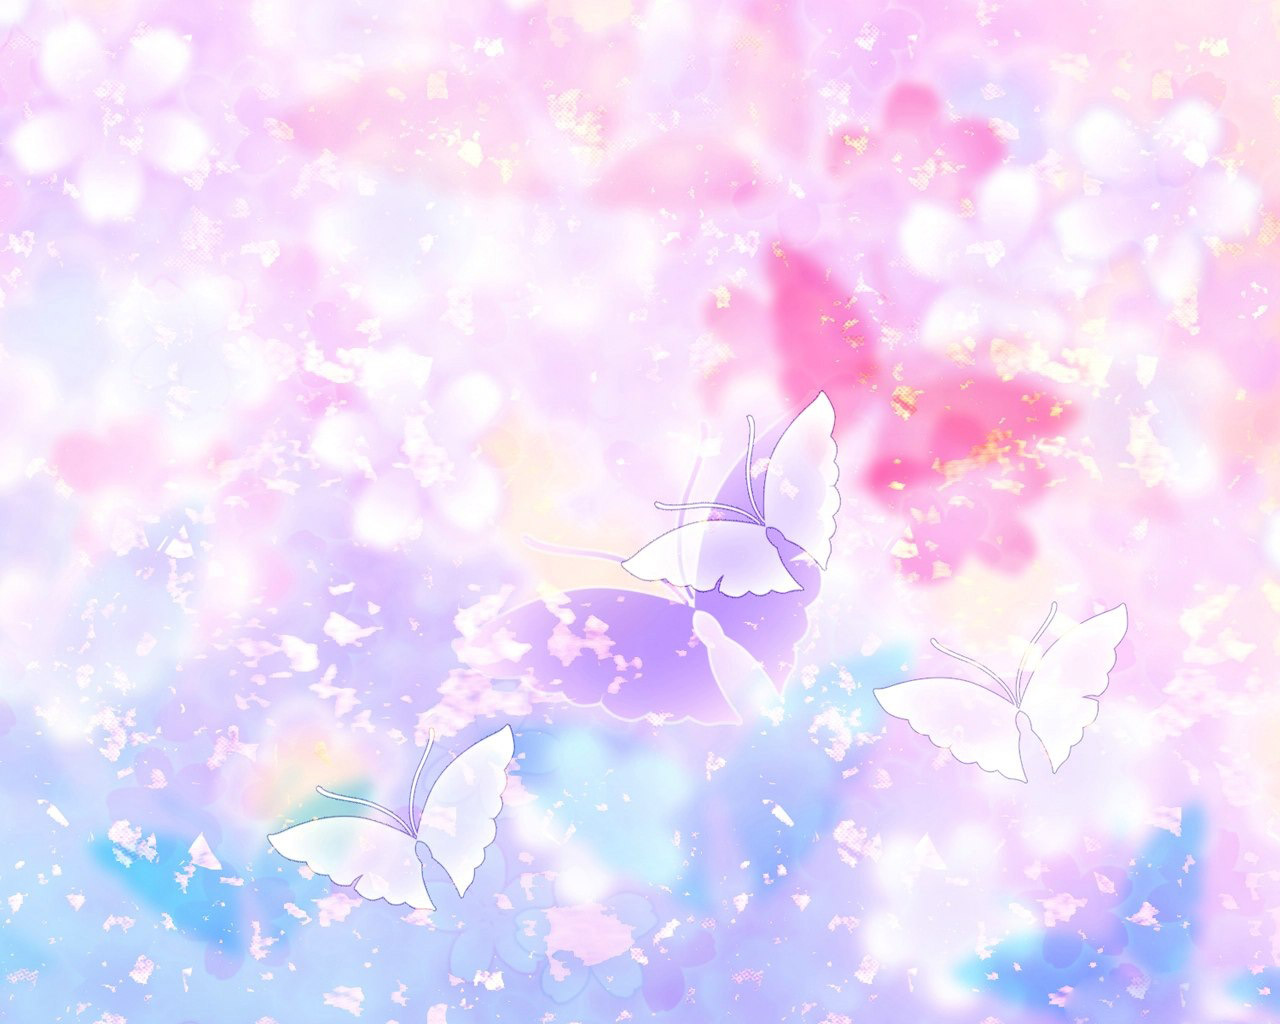 hd Wallpaper in high resolution for Get Flowers and Butterflies 1280x1024